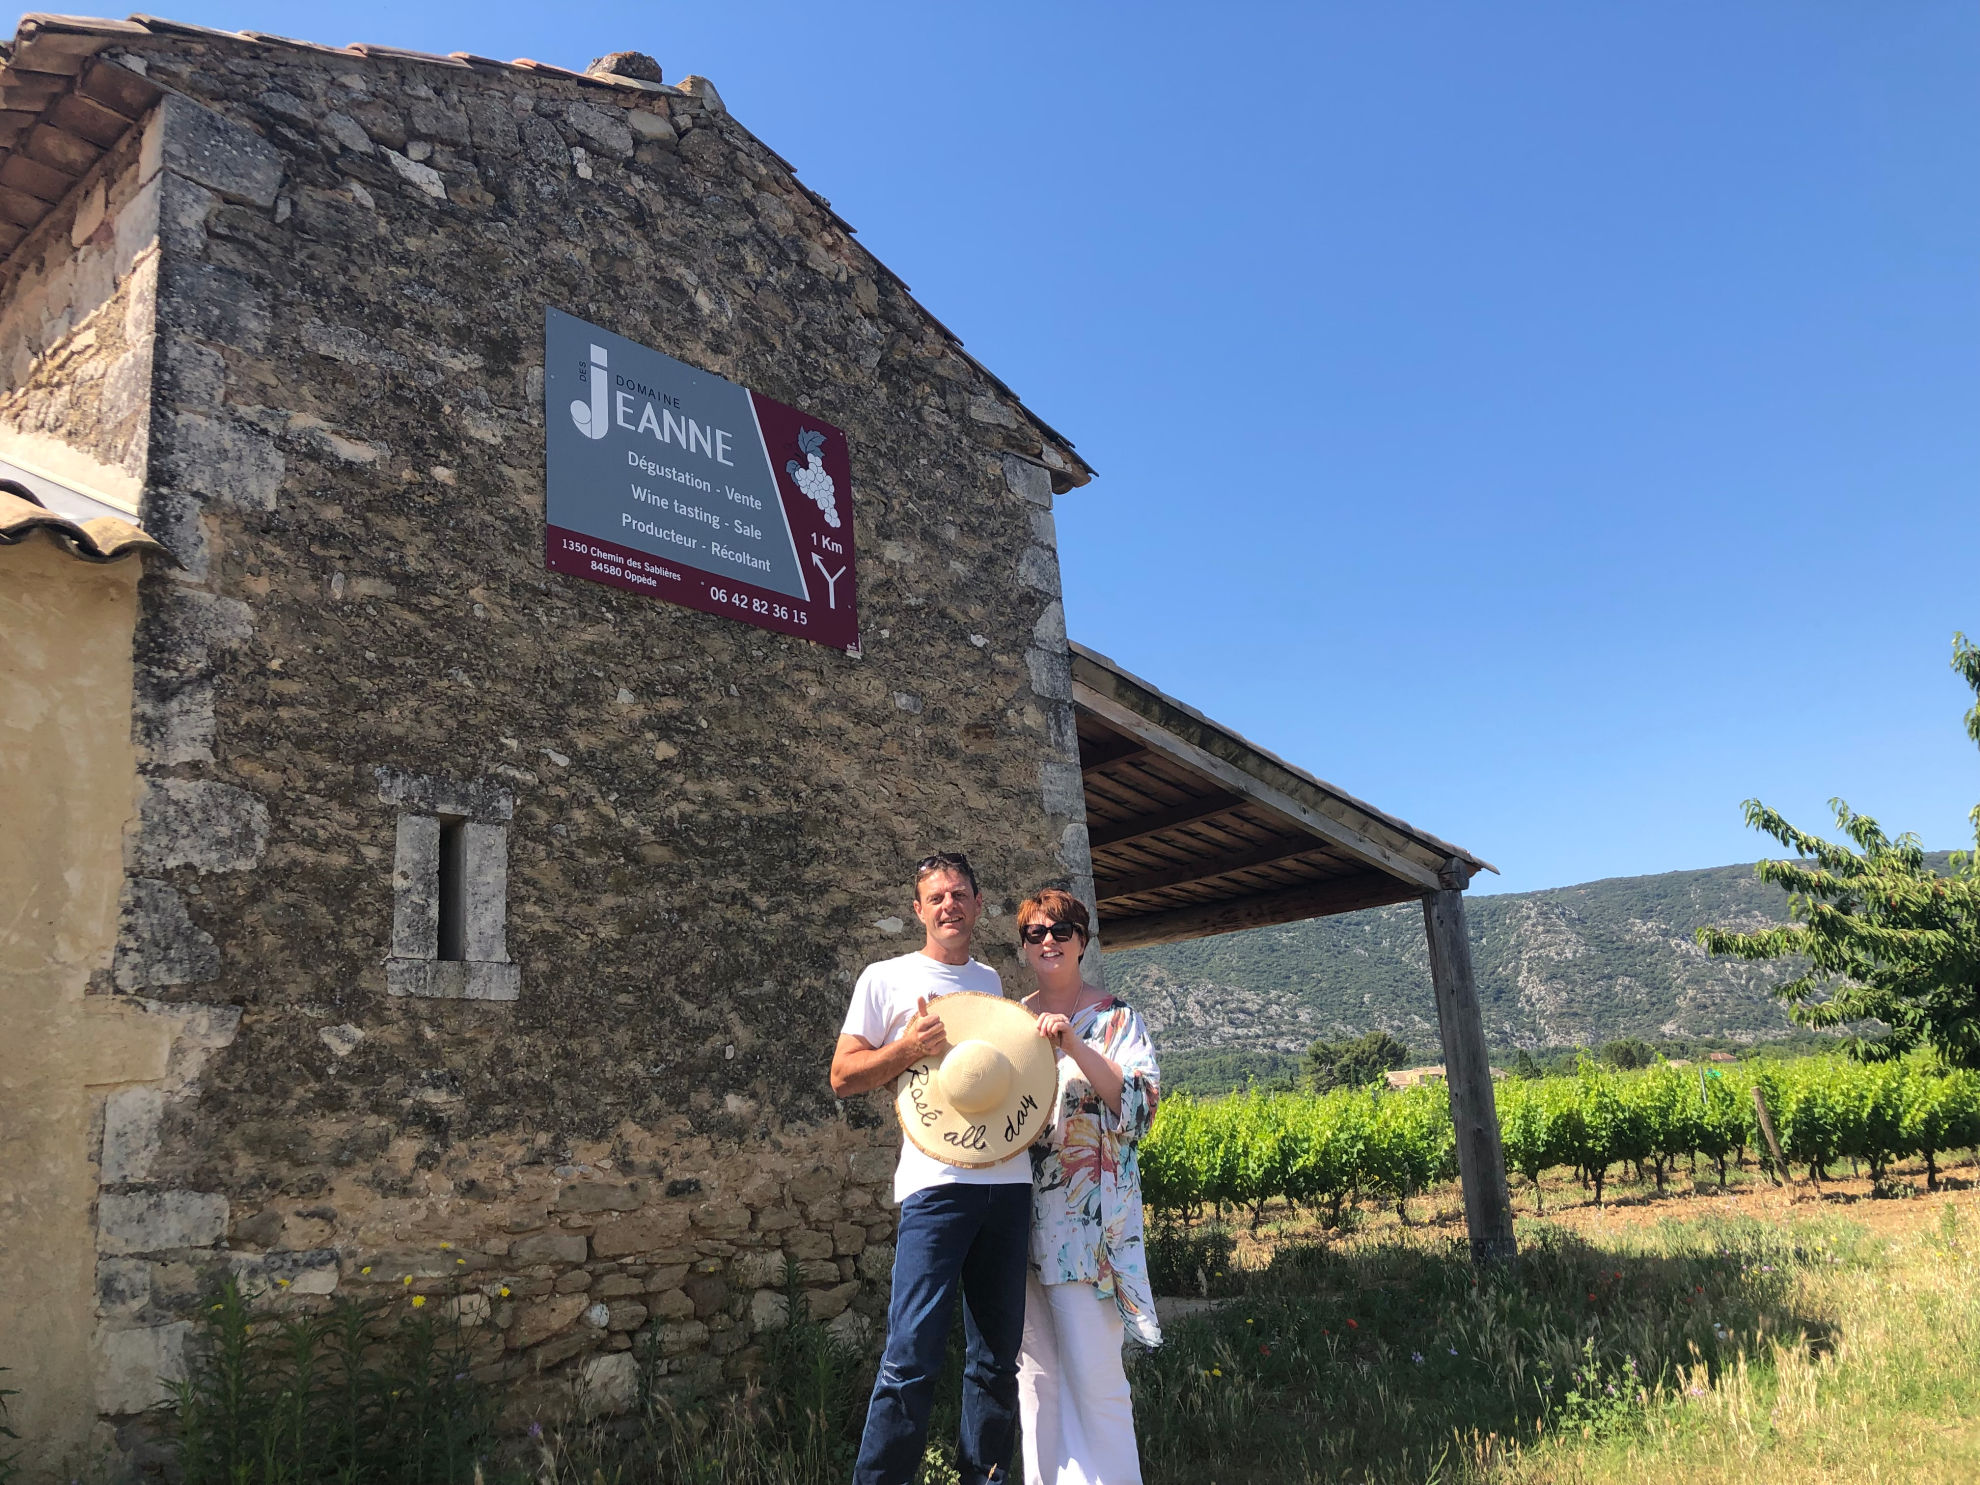 Wine-Maker & Co-Founder, Alexandre Samour with Business Development Manager, Denise Douet at the Domaine Des Jeanne Vineyard